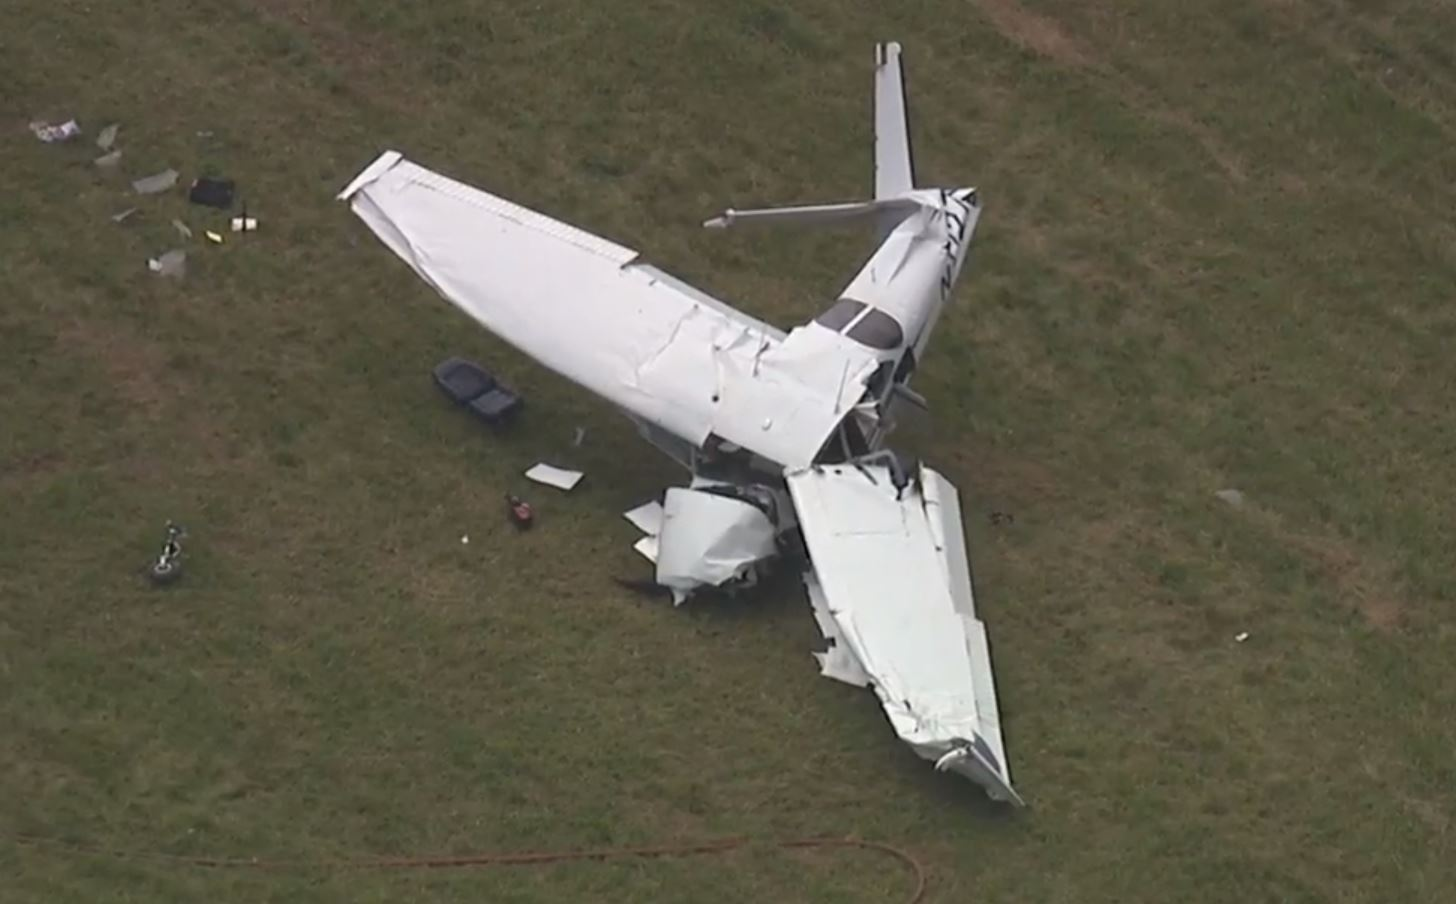 1 dead, 2 injured after small plane crash in CT